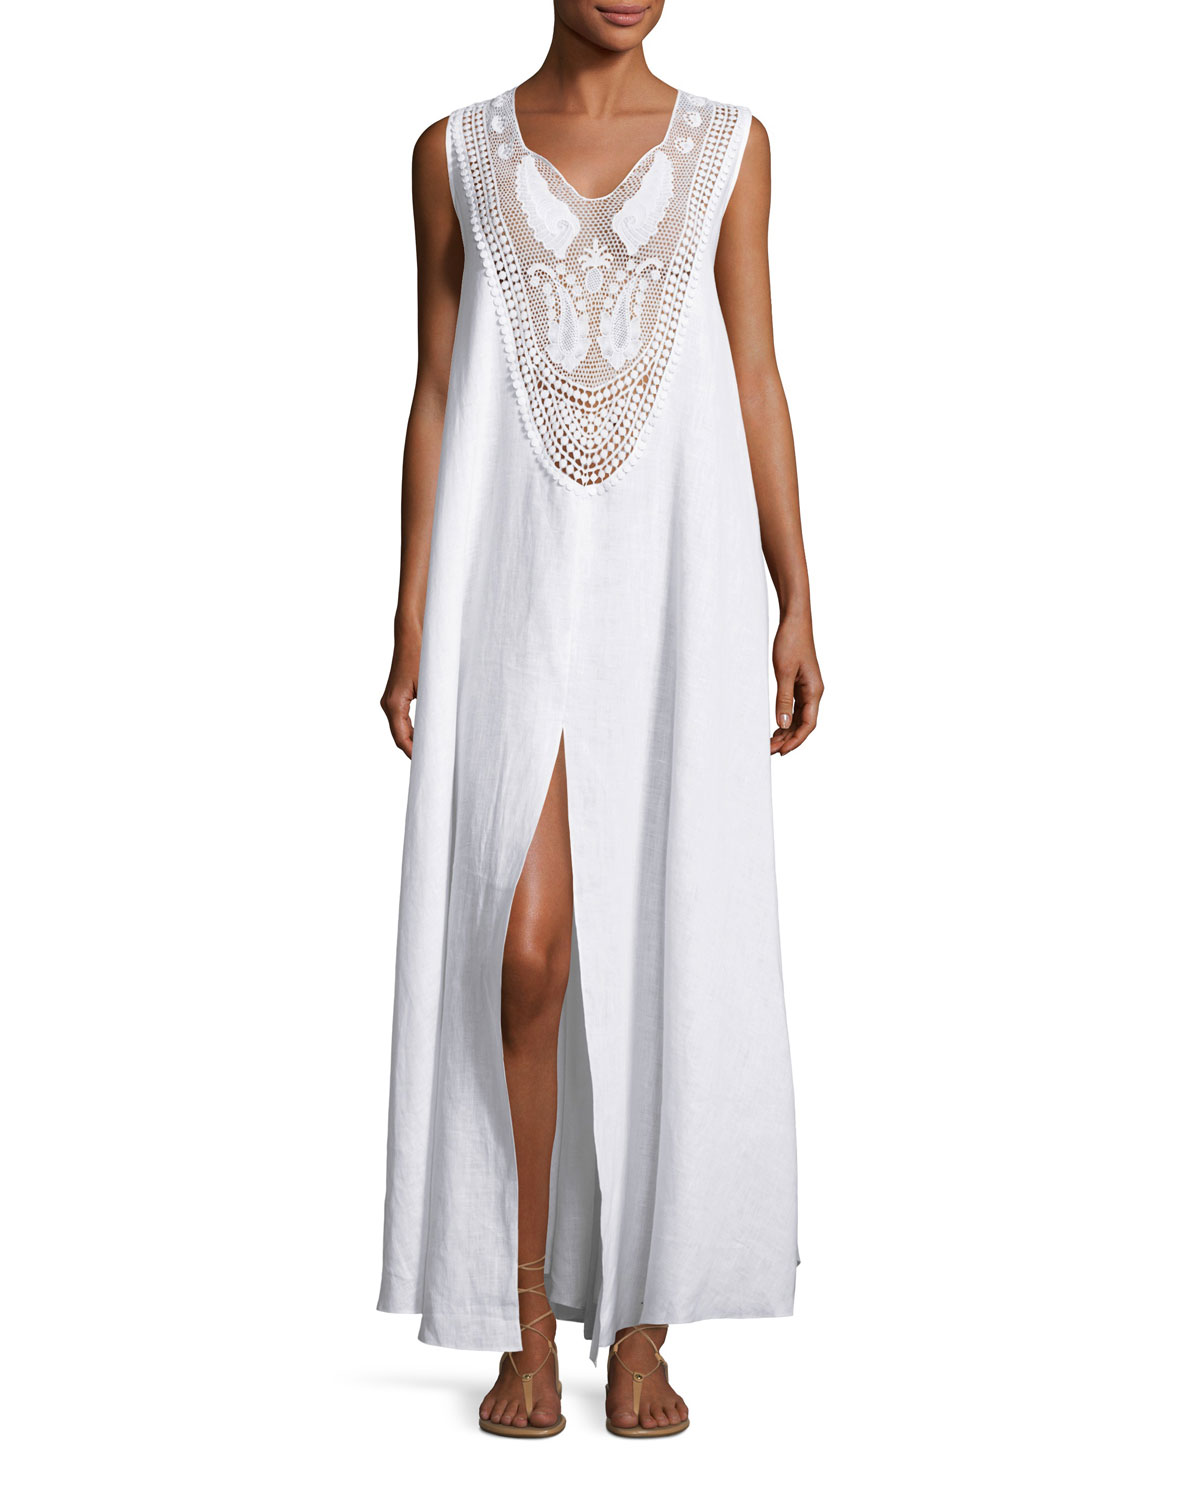 Miguelina LANA LACE-BIB MAXI DRESS, PURE WHITE